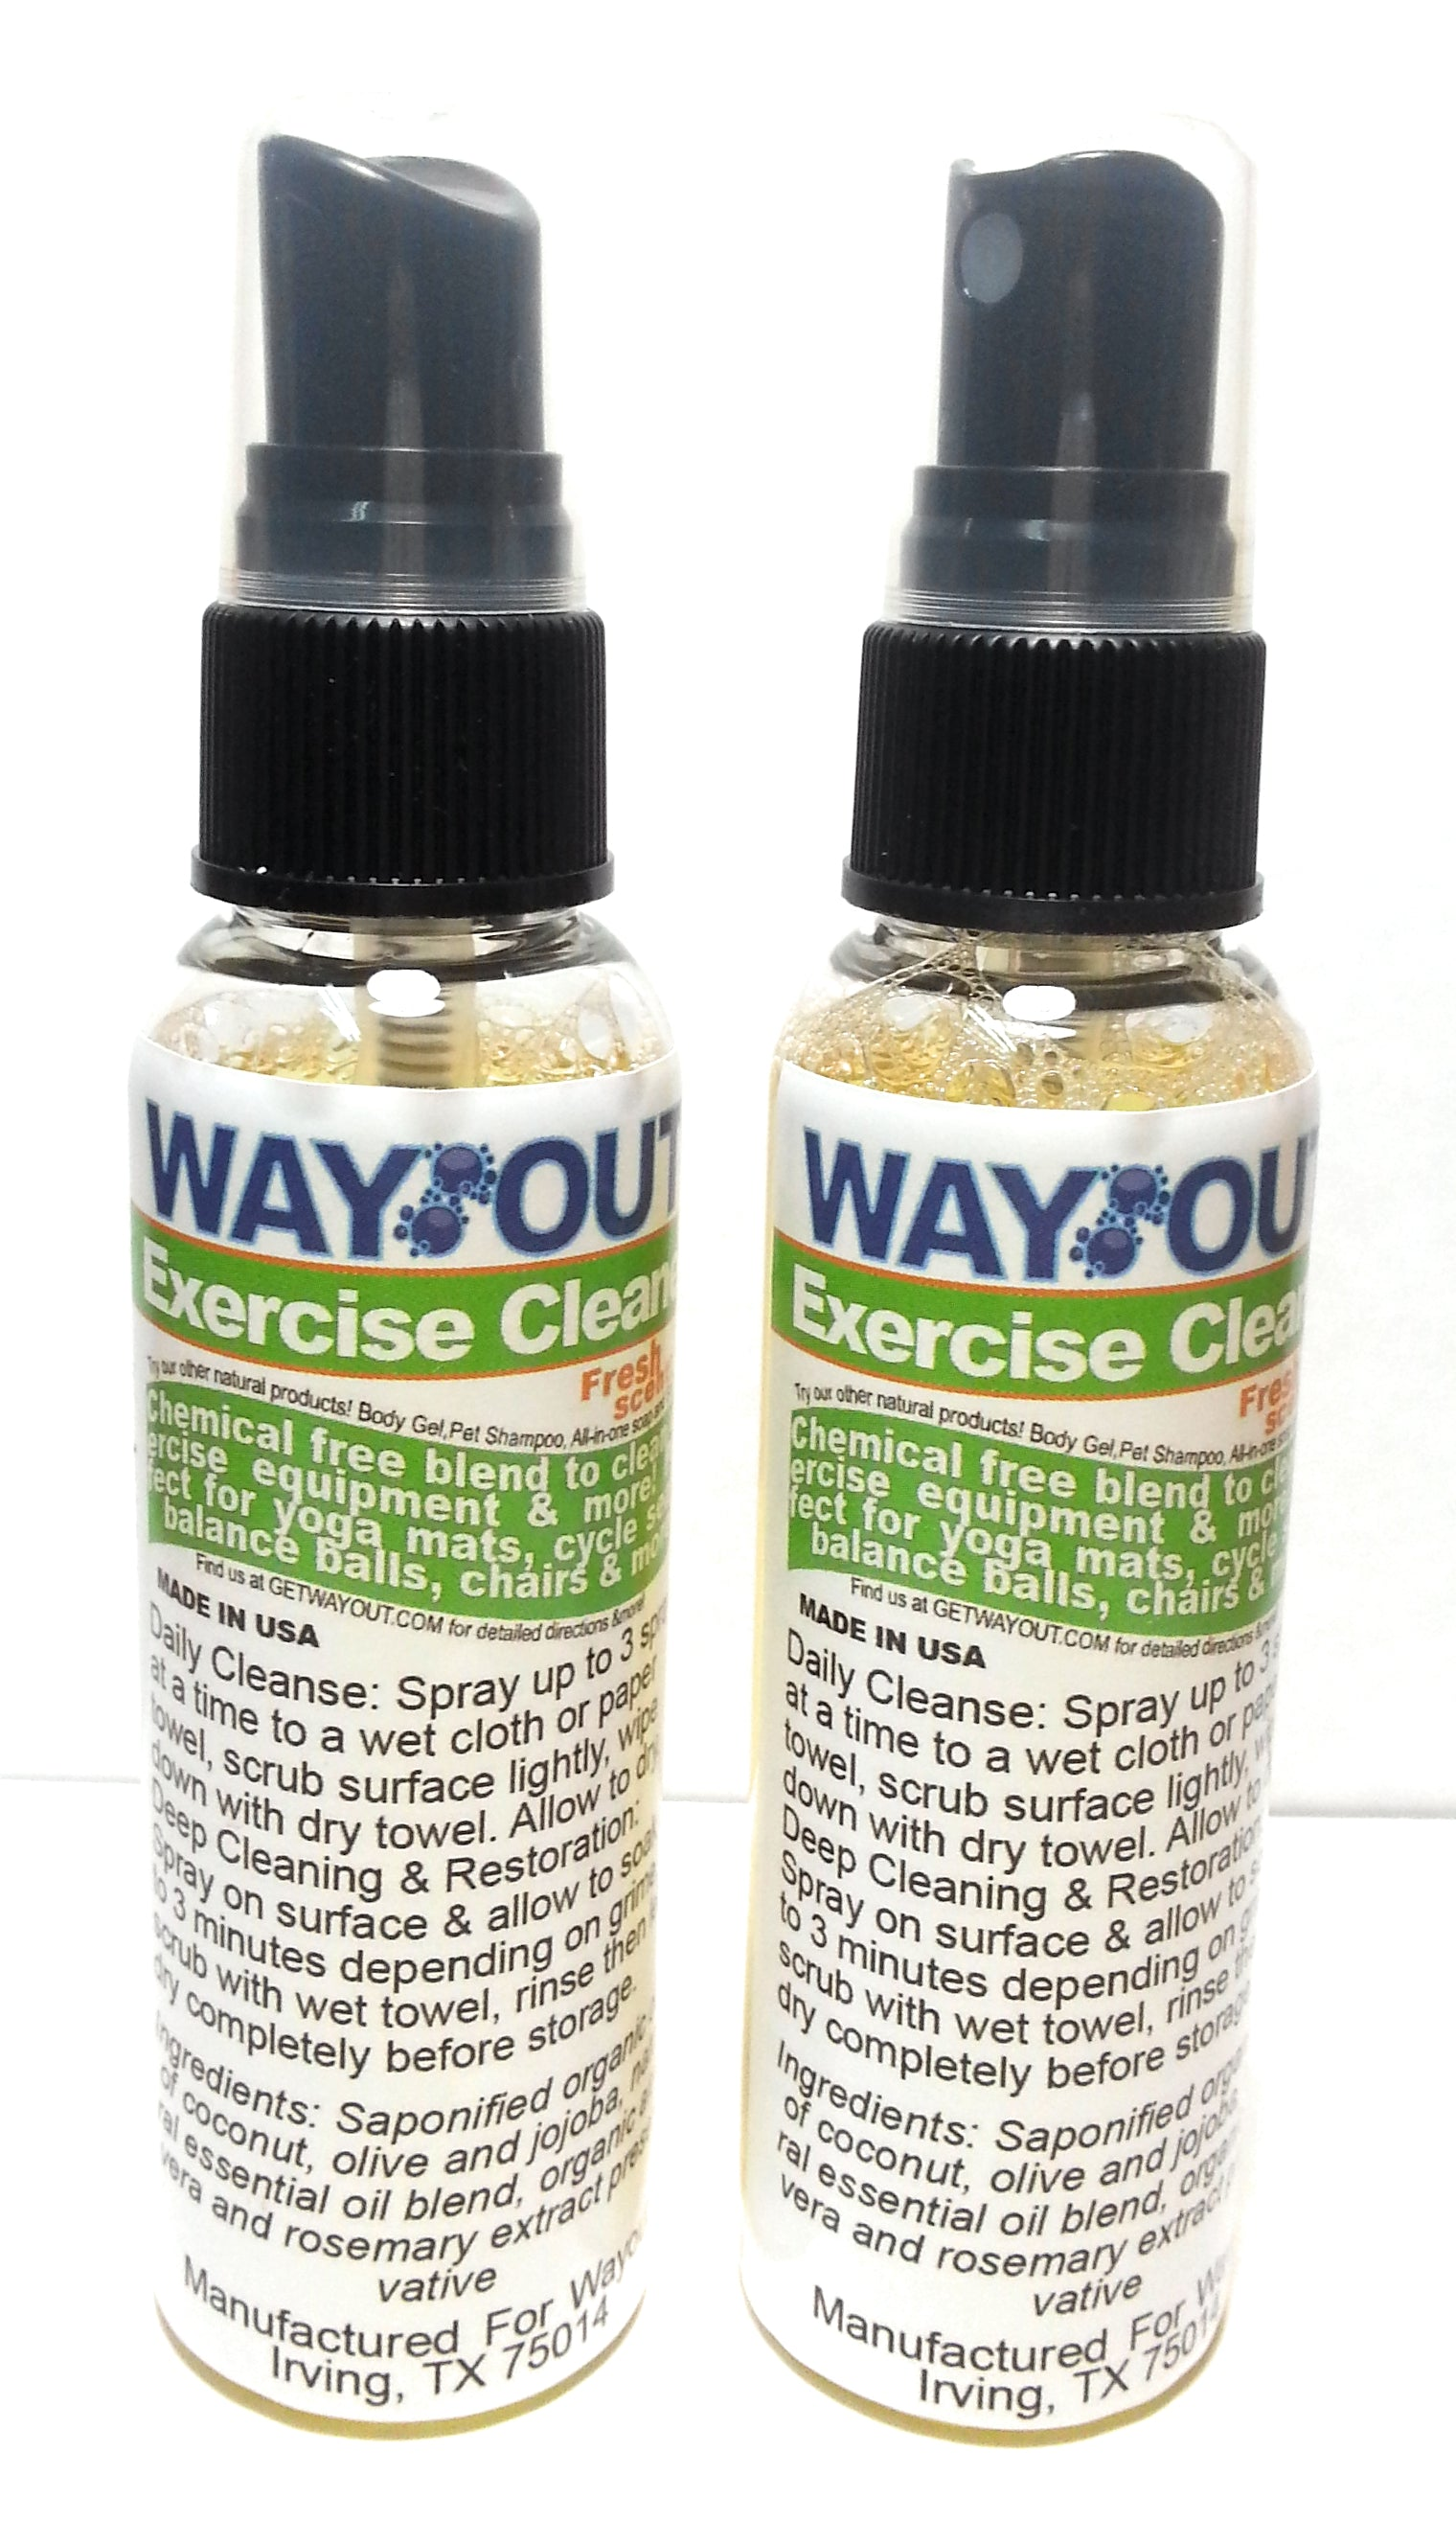 Wayout! Exercise Cleaning Spray Cleaner - 100% All-Natural with Essential Oils - 2 Count, 2 Ounce each